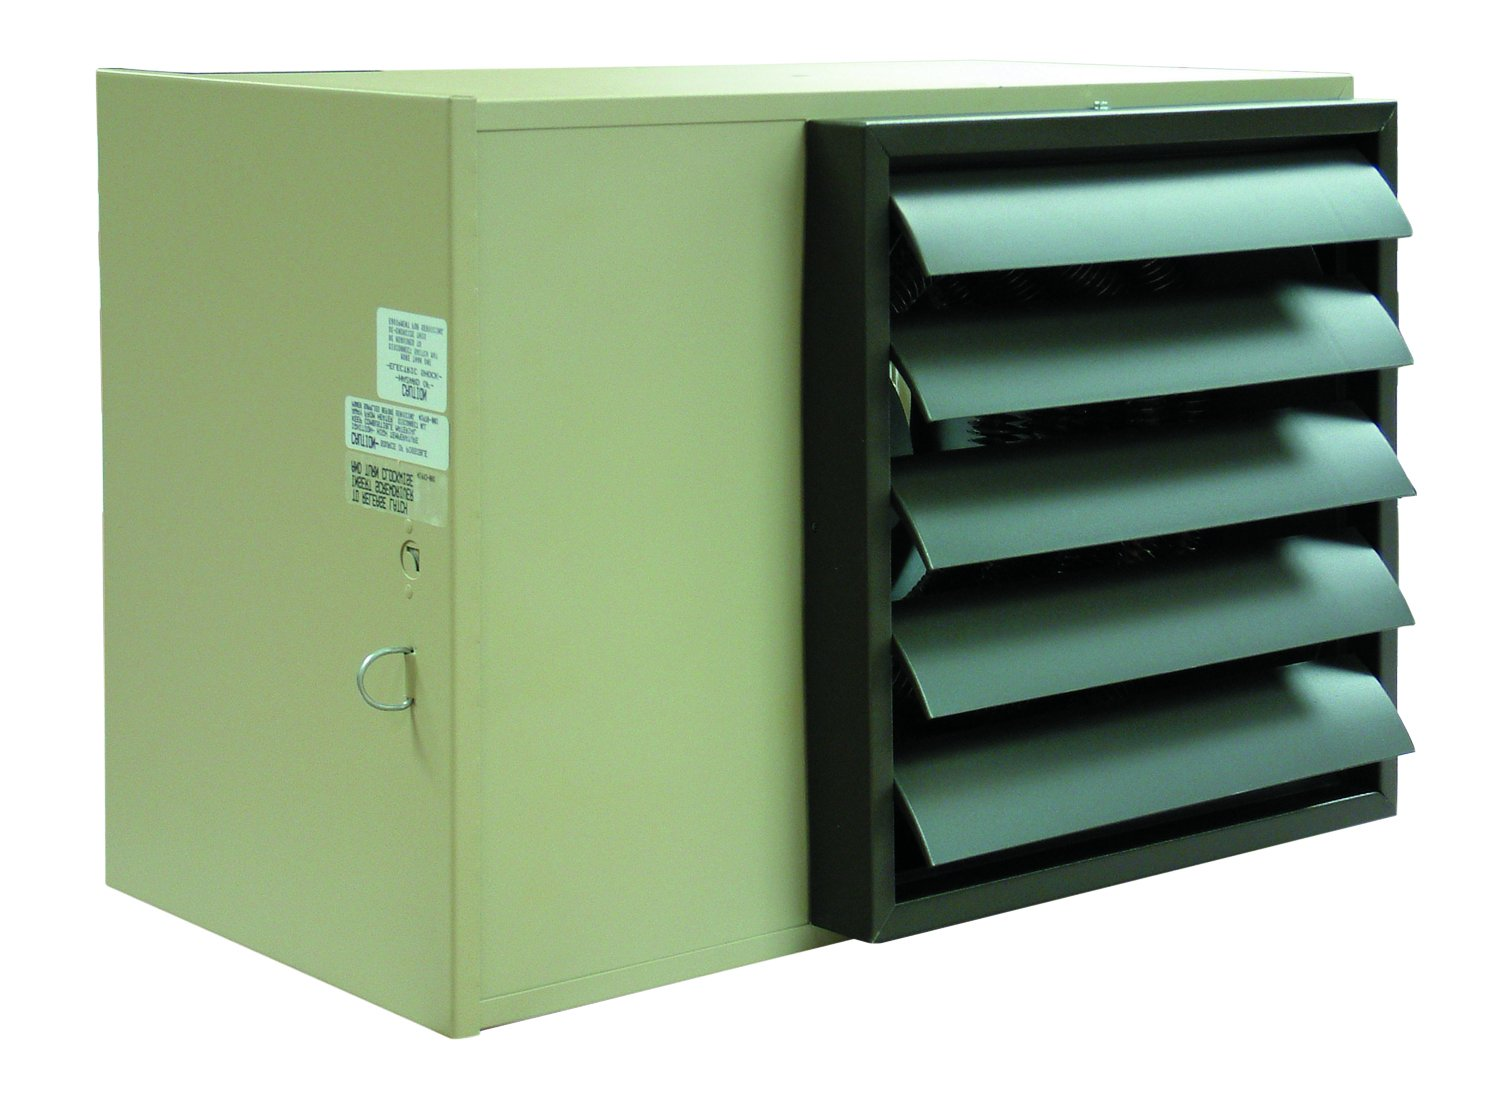 TPI H1HUH07CA1 Series UH New color Free shipping anywhere in the nation Horizontal Unit Forced Heater 240 Fan